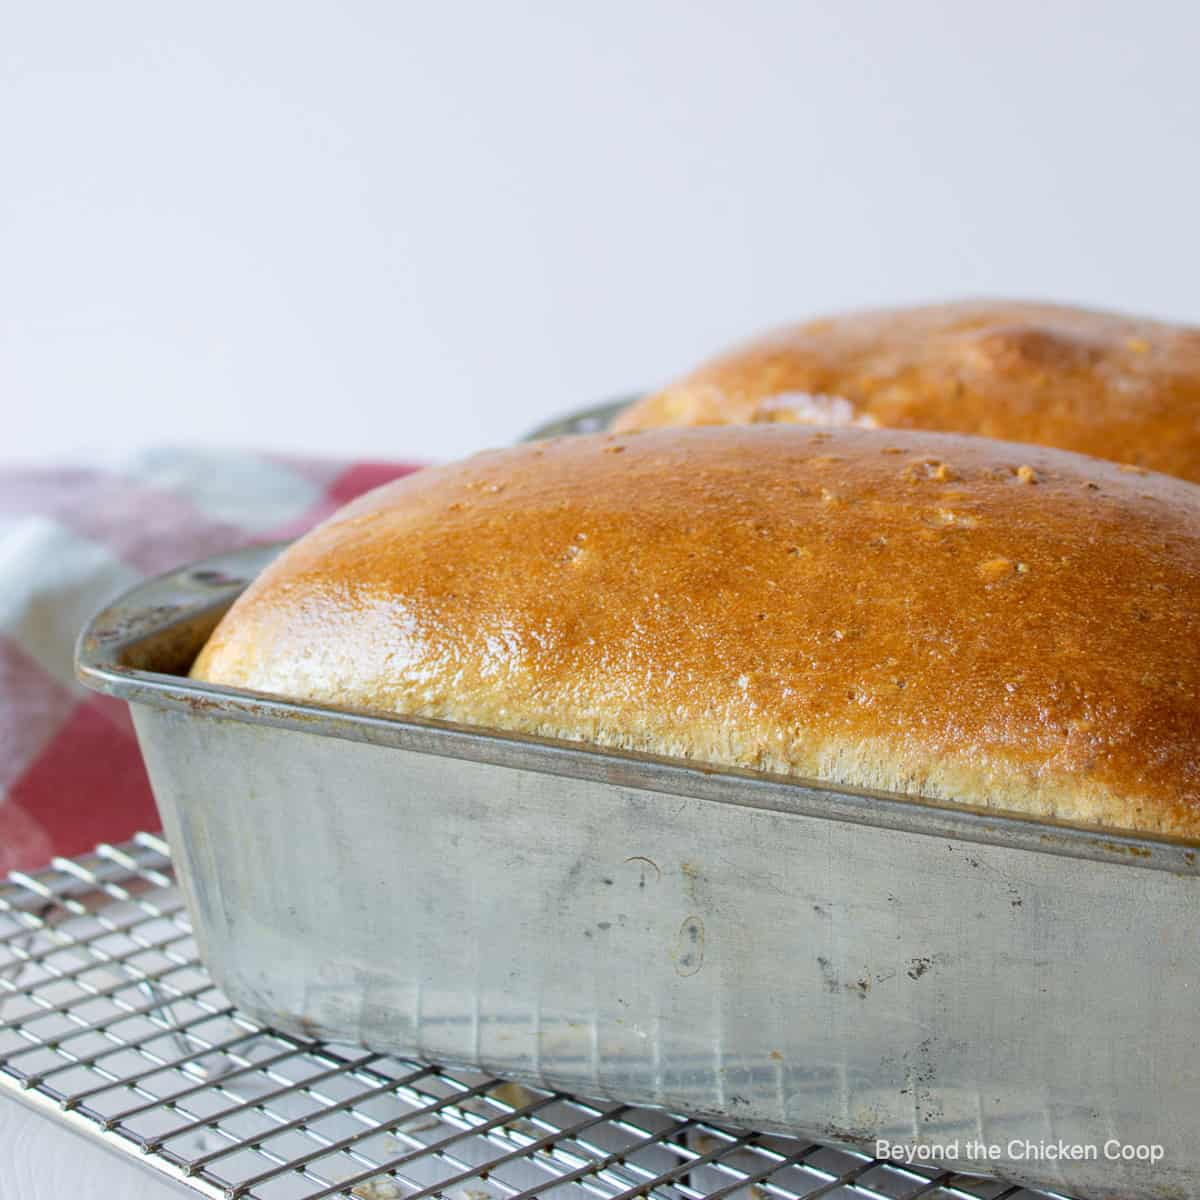 Two loaves of cooked bread in a metal bread pan.